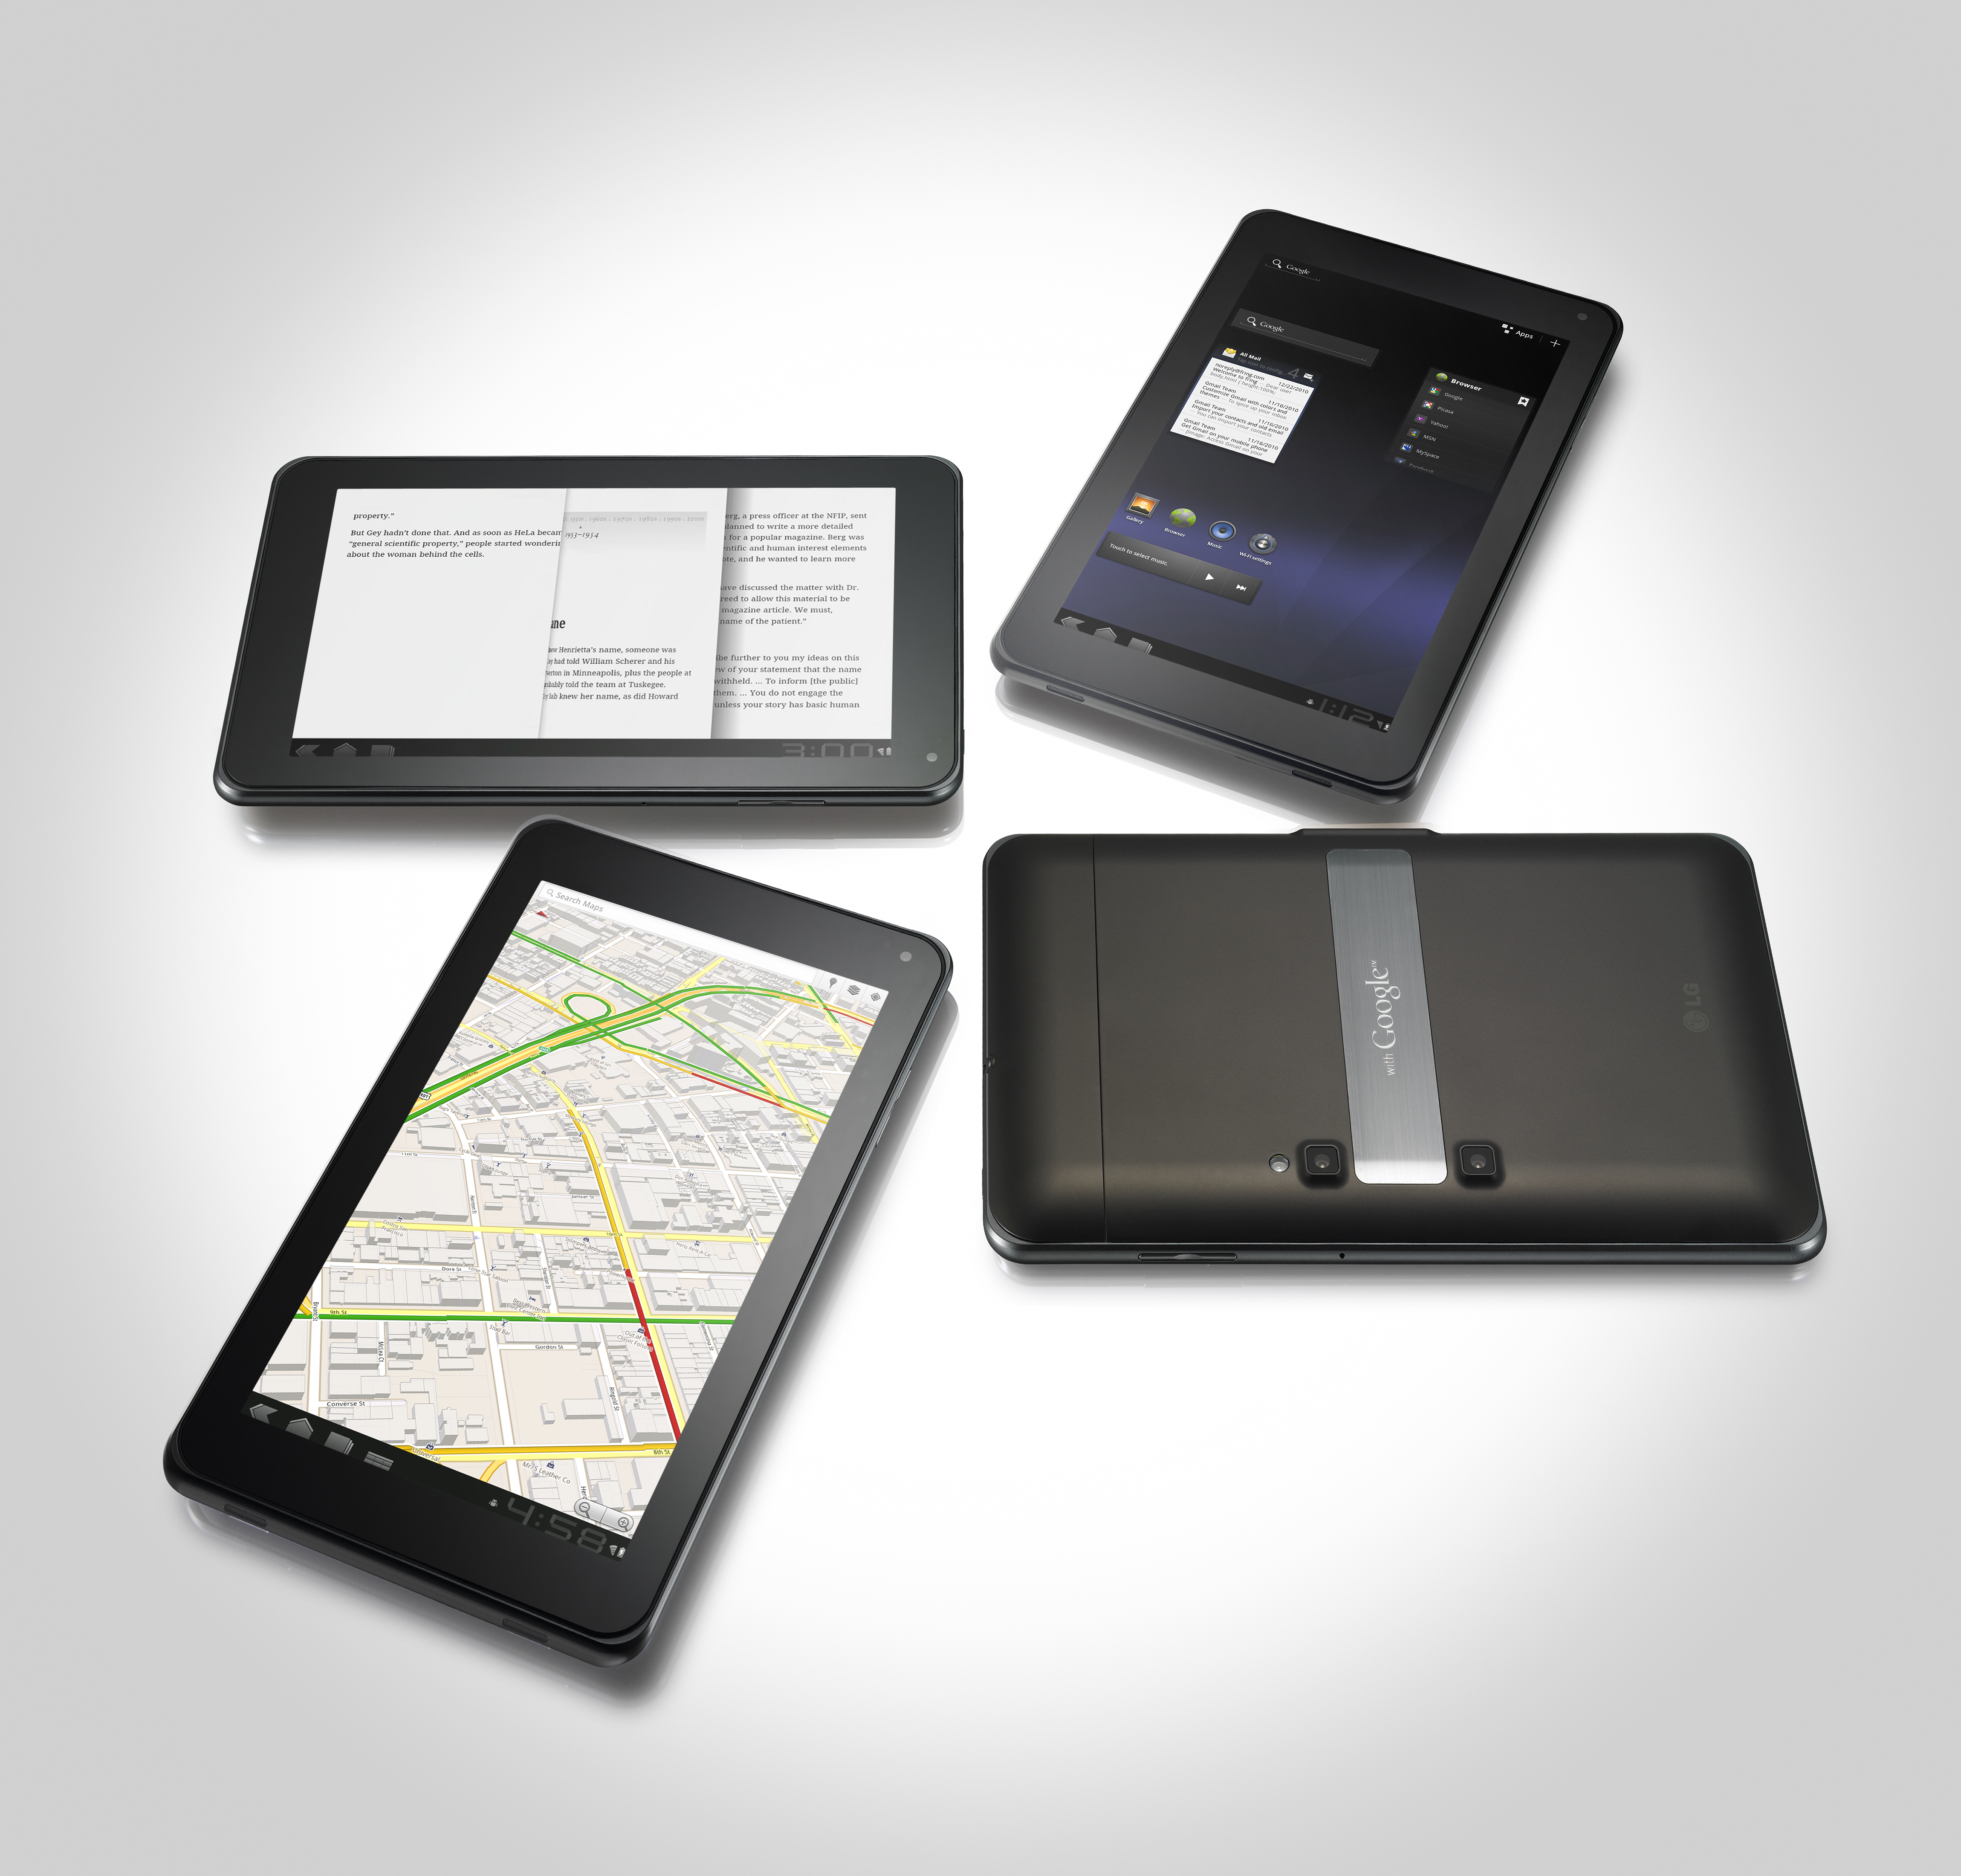 SETTING A NEW STANDARD IN TABLETS, LG OPTIMUS PAD DEBUTS AT